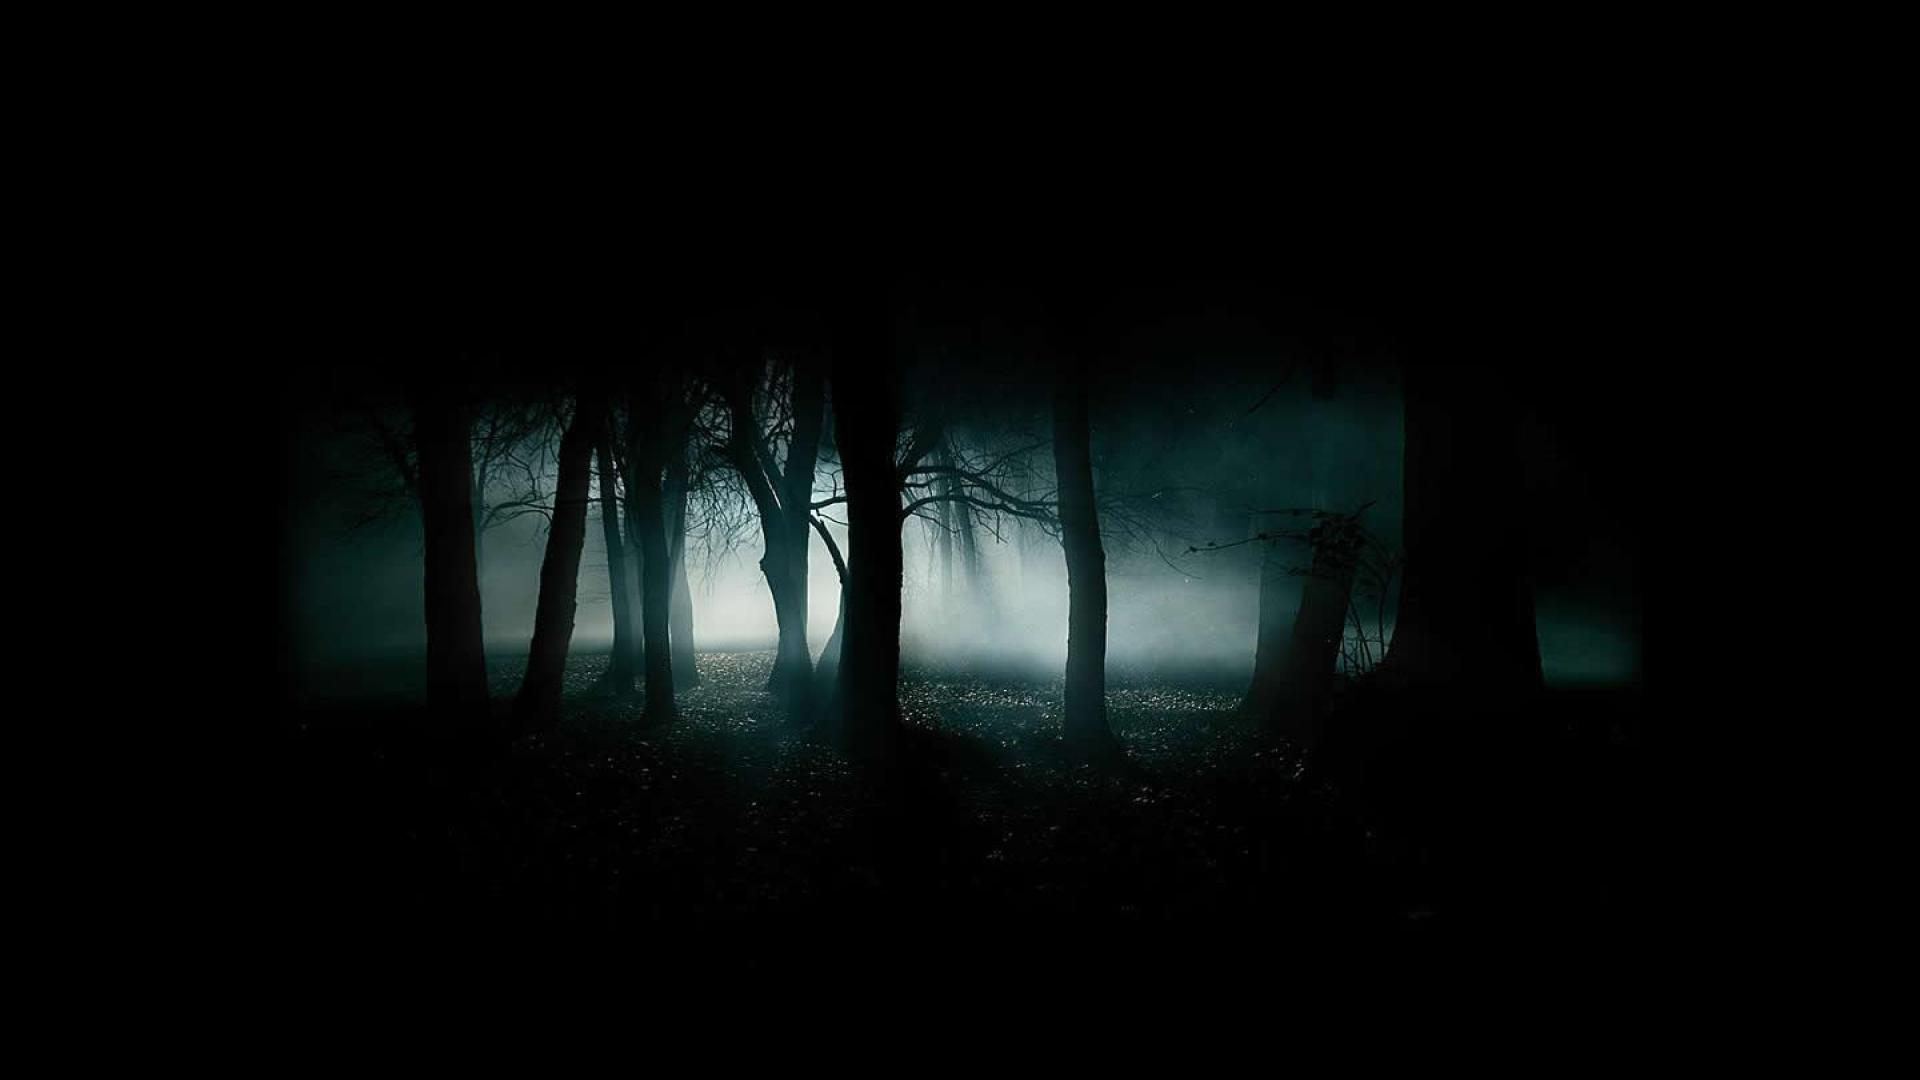 Download Scary Dark Forest Kostenlos Wallpaper 1920x1080 | HD .